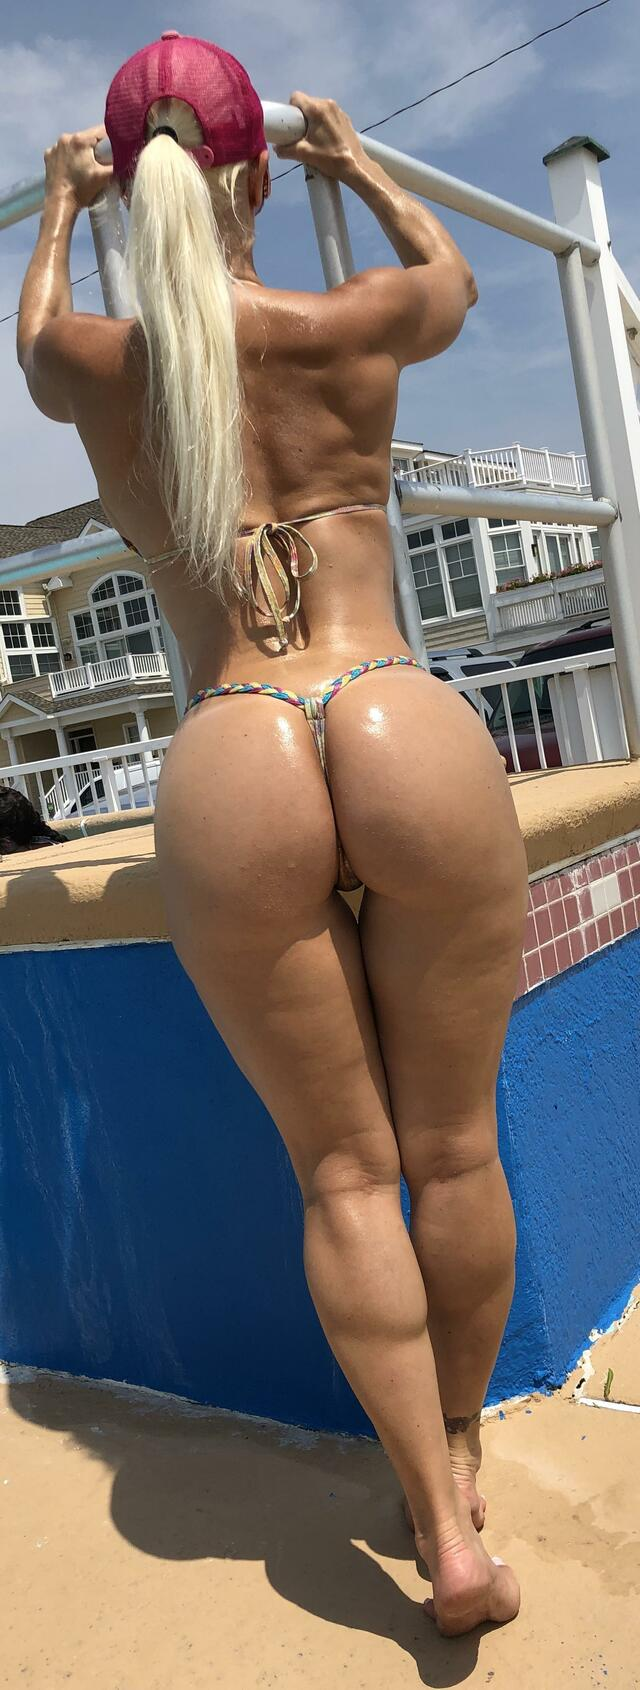 Can you put lotion on my ass? free nude pictures